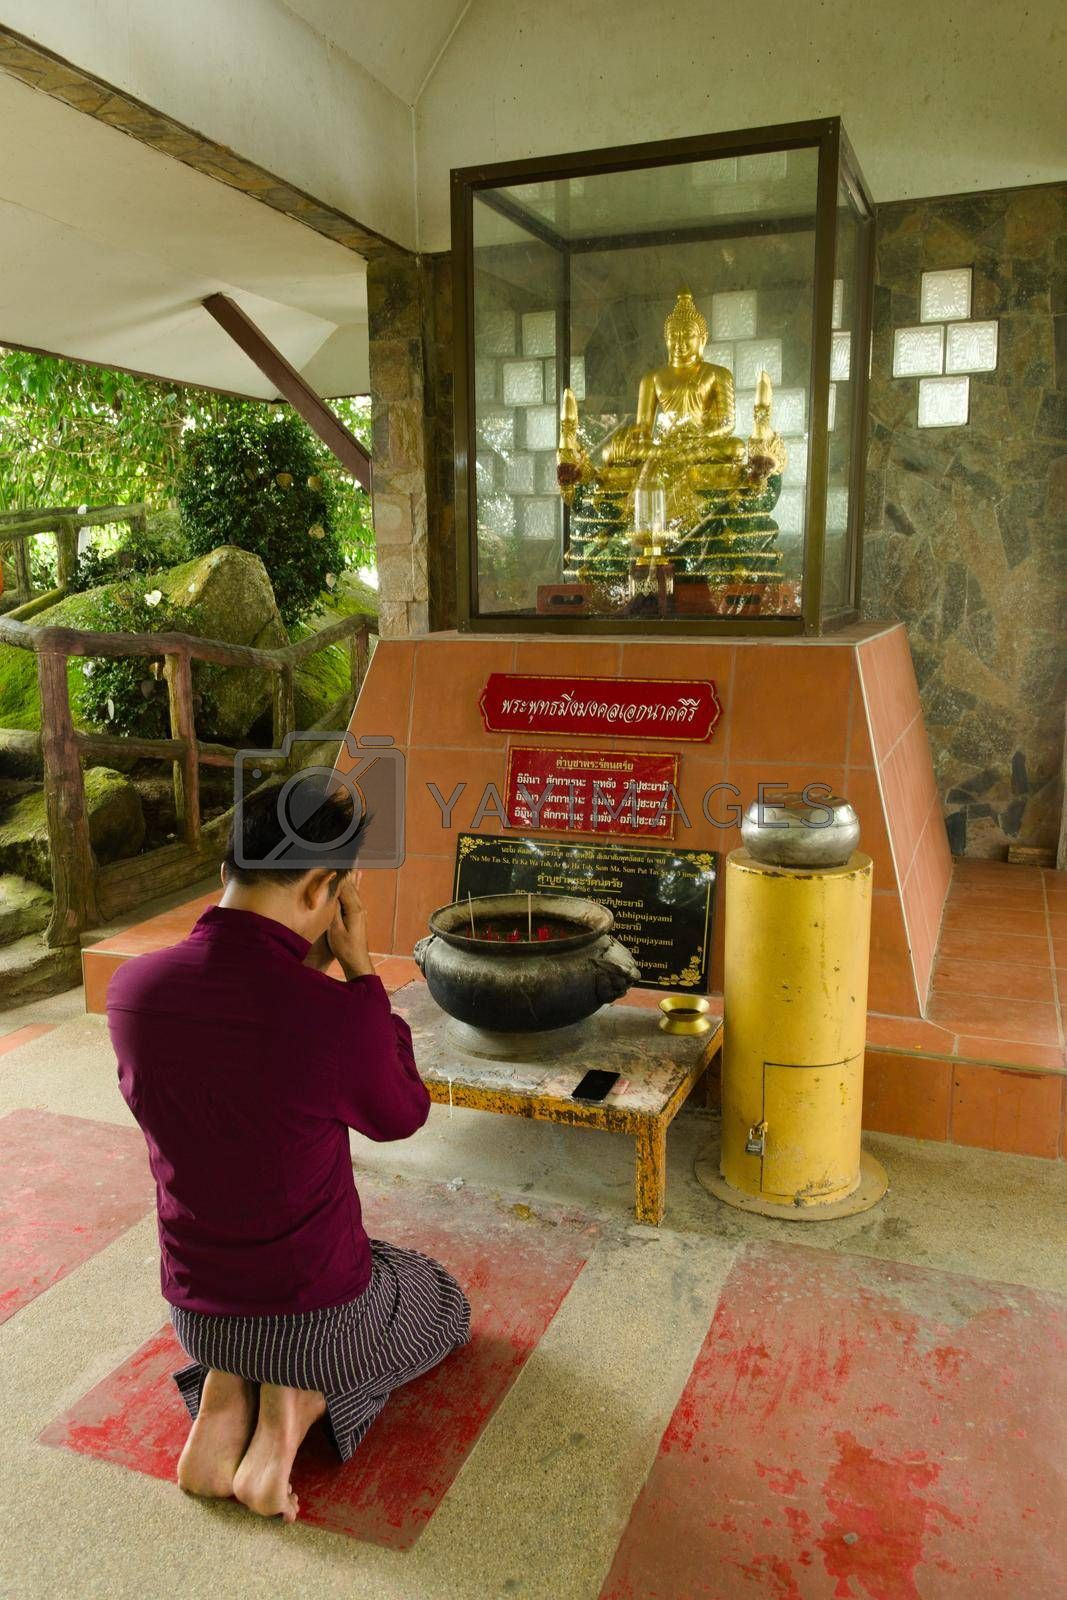 Royalty free image of 2019-11-06 / Phuket, Thailand - A kneeling, bare-footed man praying to a golden statue of Buddha. by hernan_hyper